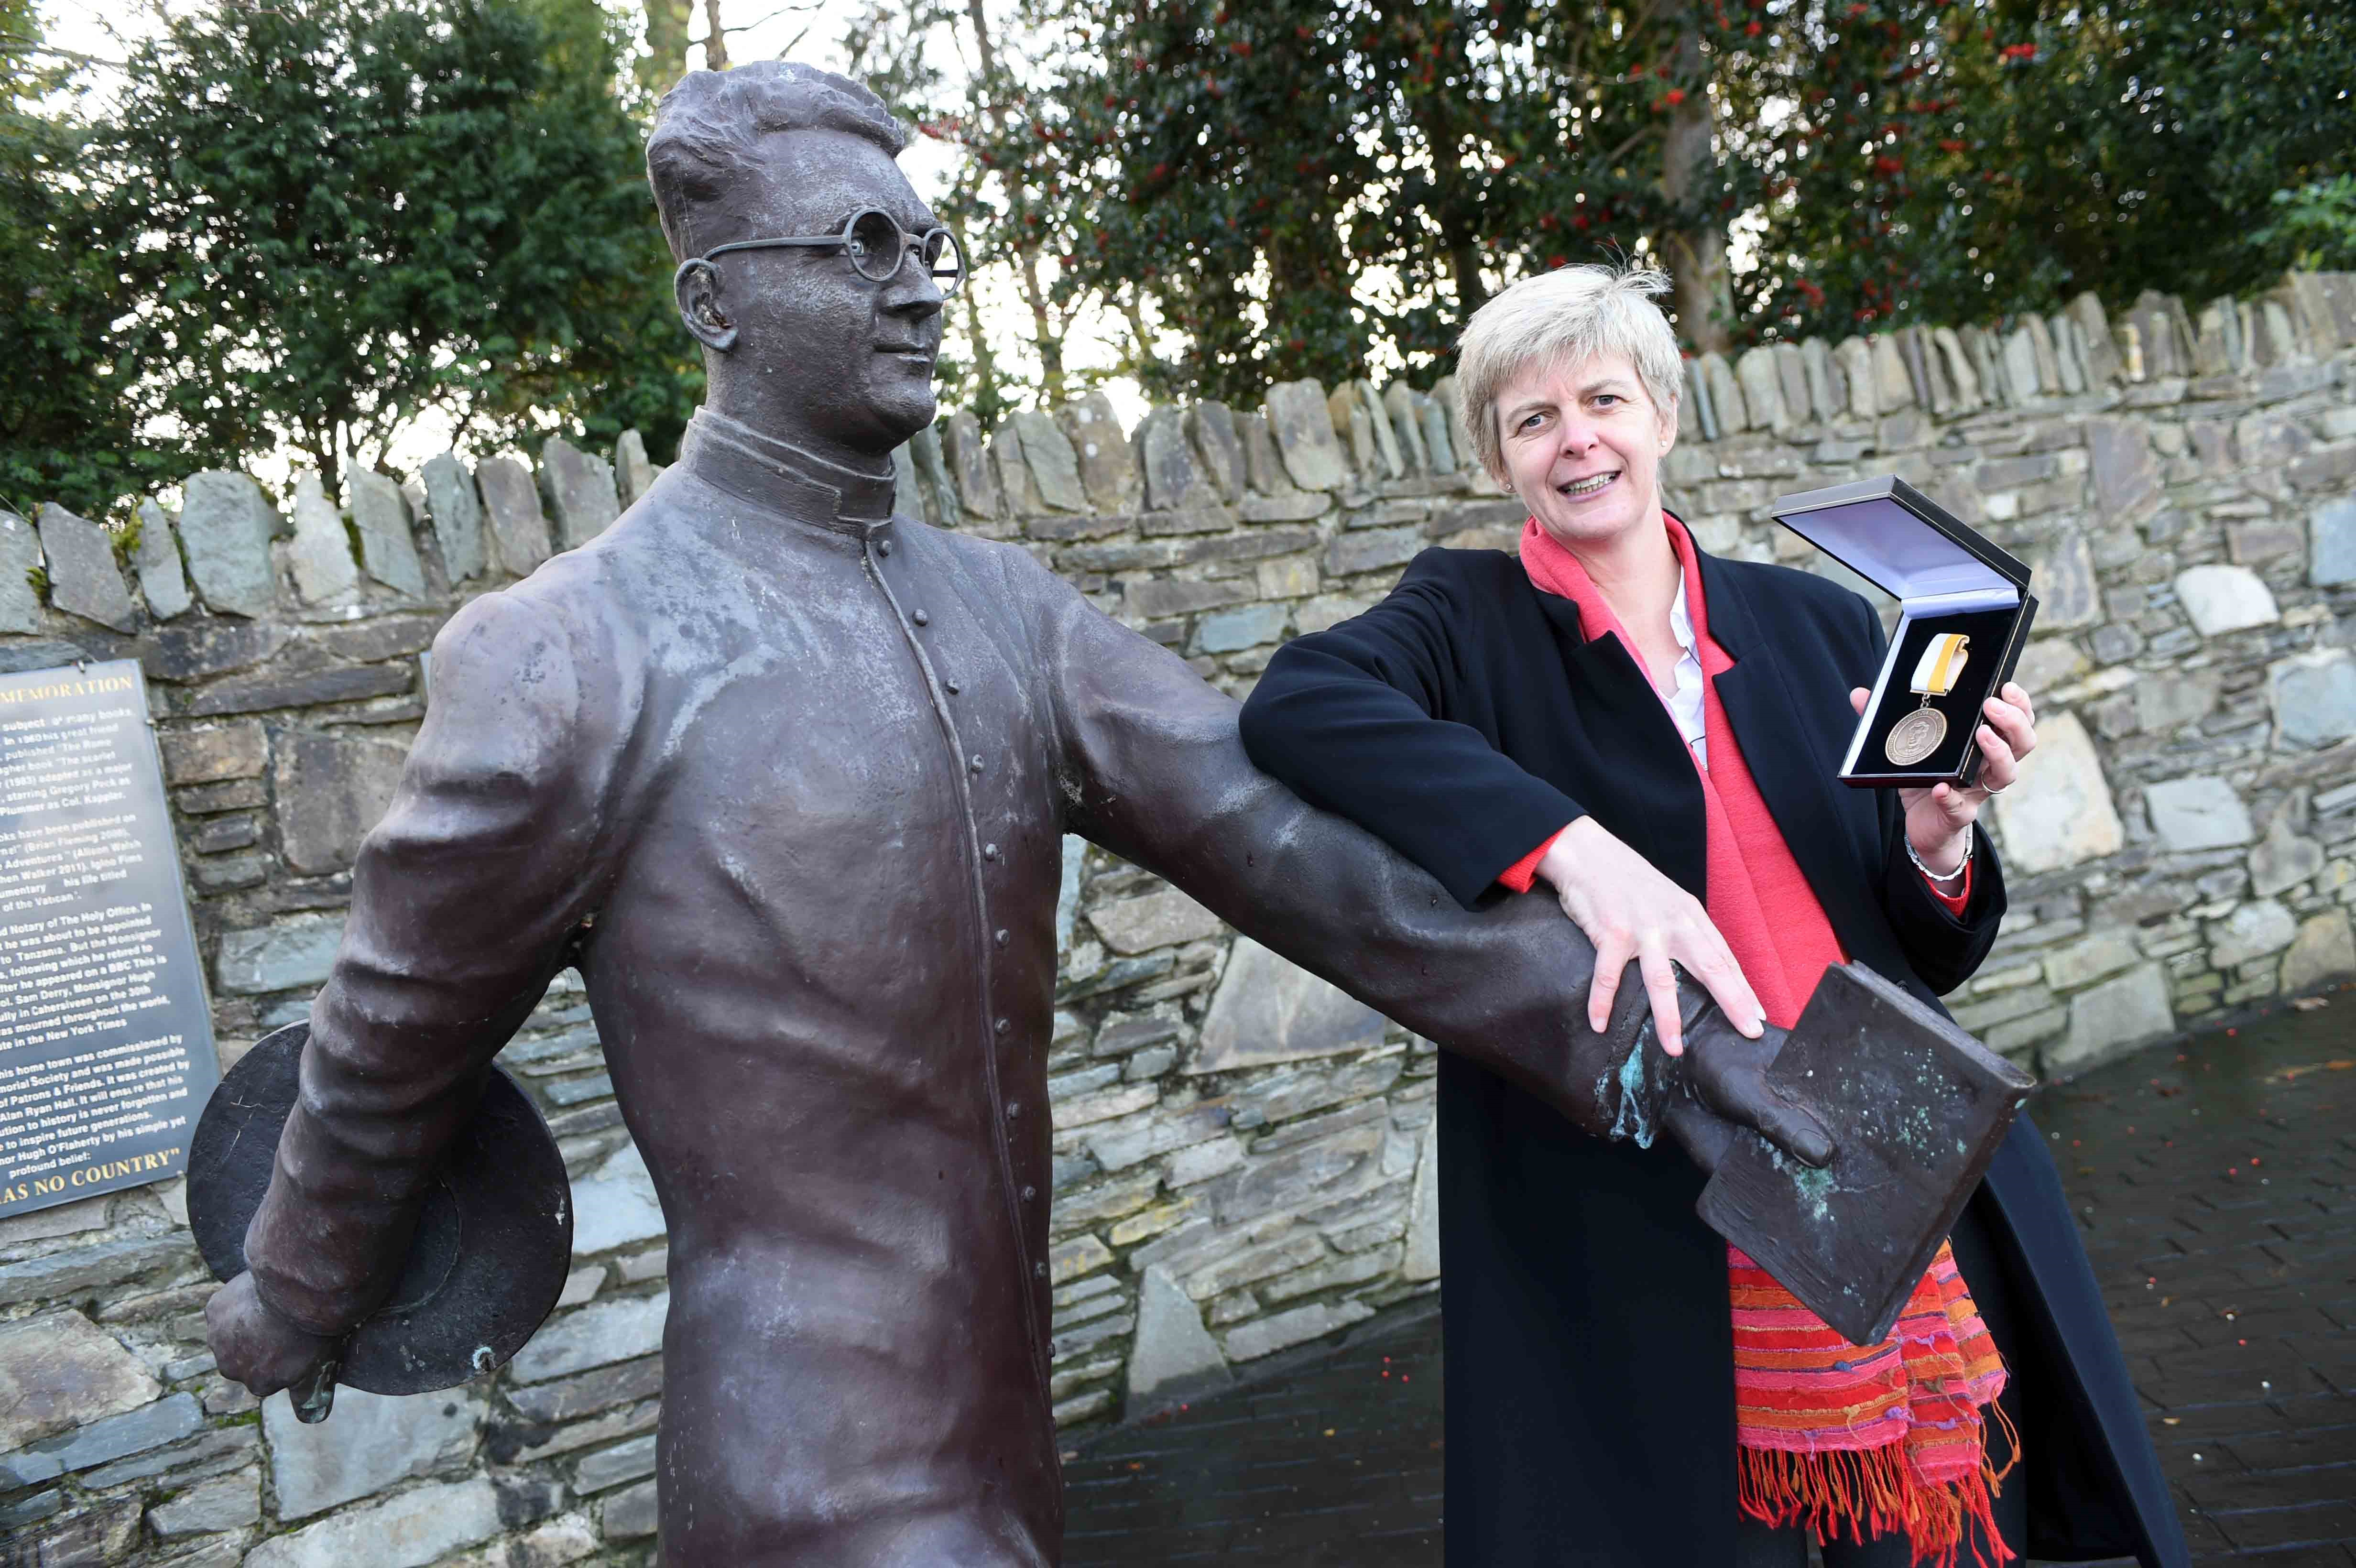 """5-11-2017: SR ORLA TREACY RECEIVES O'FLAHERTY HUMANITARIAN AWARD 2017: Sr. Orla Treacy from Bray, County Wicklow pictured in Killarney on Sunday after receiving the 2017 Hugh O'Flaherty International Humanitarian Award. This is the tenth year of this Award, established in 2008 to commemorate the humanitarian work of Killarney native Monsignor Hugh O'Flaherty, in Nazi occupied Rome during WW2.  Photo: Don MacMonagle  Sr Orla is the Principal of a Loreto education and medical mission in Rumbek, South Sudan. In 2004, the Loreto Sisters in Ireland and worldwide started a new movement called 'Courage to Move.' It was an invitation for all Loreto Sisters in different countries to start a new mission, to re-engage with missionary spirit that was reflected in the early foundations, and to try to start a new mission in new countries. Shortly after she was professed as a Loreto Sister, Sr Orla responded to this call and in 2006 travelled to Sudan. In the face of abject poverty, civil war and the absolute oppression of women and in particular young girls, they succeeded in establishing schools and a basic medical centre in the area of Rumbek in central South Sudan.    In accepting the Award, Sr Orla told the large audience, """"In 2011, South Sudan gained independence and it was hoped that matters would improve.  Following a brief period of relative peace, conditions in South Sudan have returned to those applying pre-Independence and the Loreto Sisters continue to struggle to provide education and minimal medical care for those in their care"""".   She went on to describe the terrible circumstances facing young girls in South Sudan, with forced marriages while still in their teens, high mortality in childbirth and almost non-existent education, even at primary level.   Concluding on a positive note, she added, """"The Loreto sisters are committed to staying the course and with the help of supporters in South Sudan and at home in Ireland, we will continue to do everythin"""